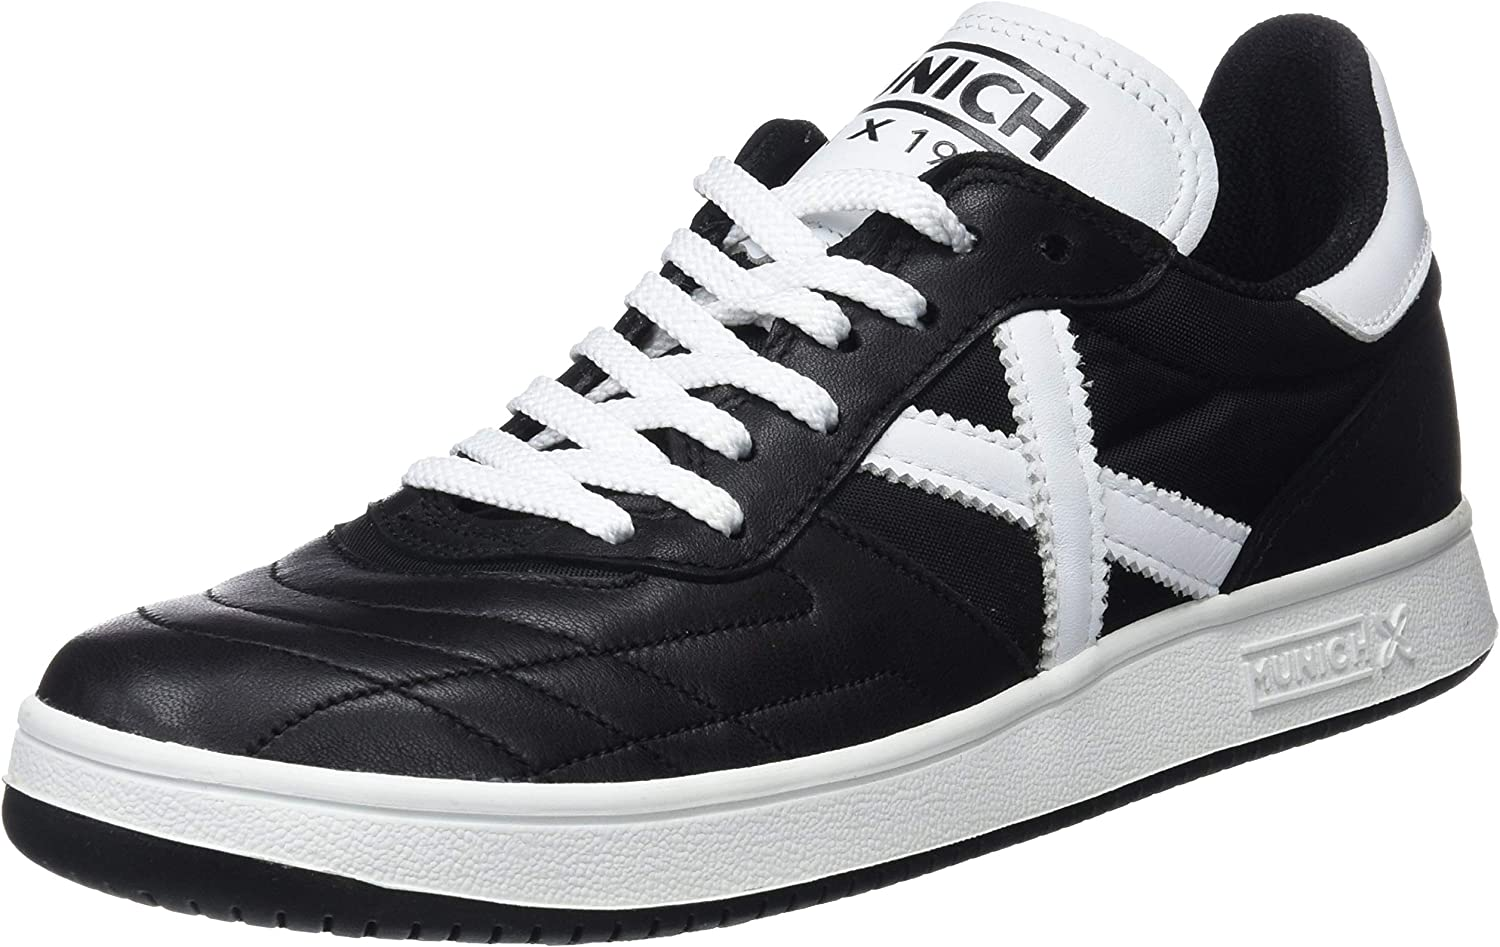 Munich Unisex Adults' Orion Low-Top Sneakers